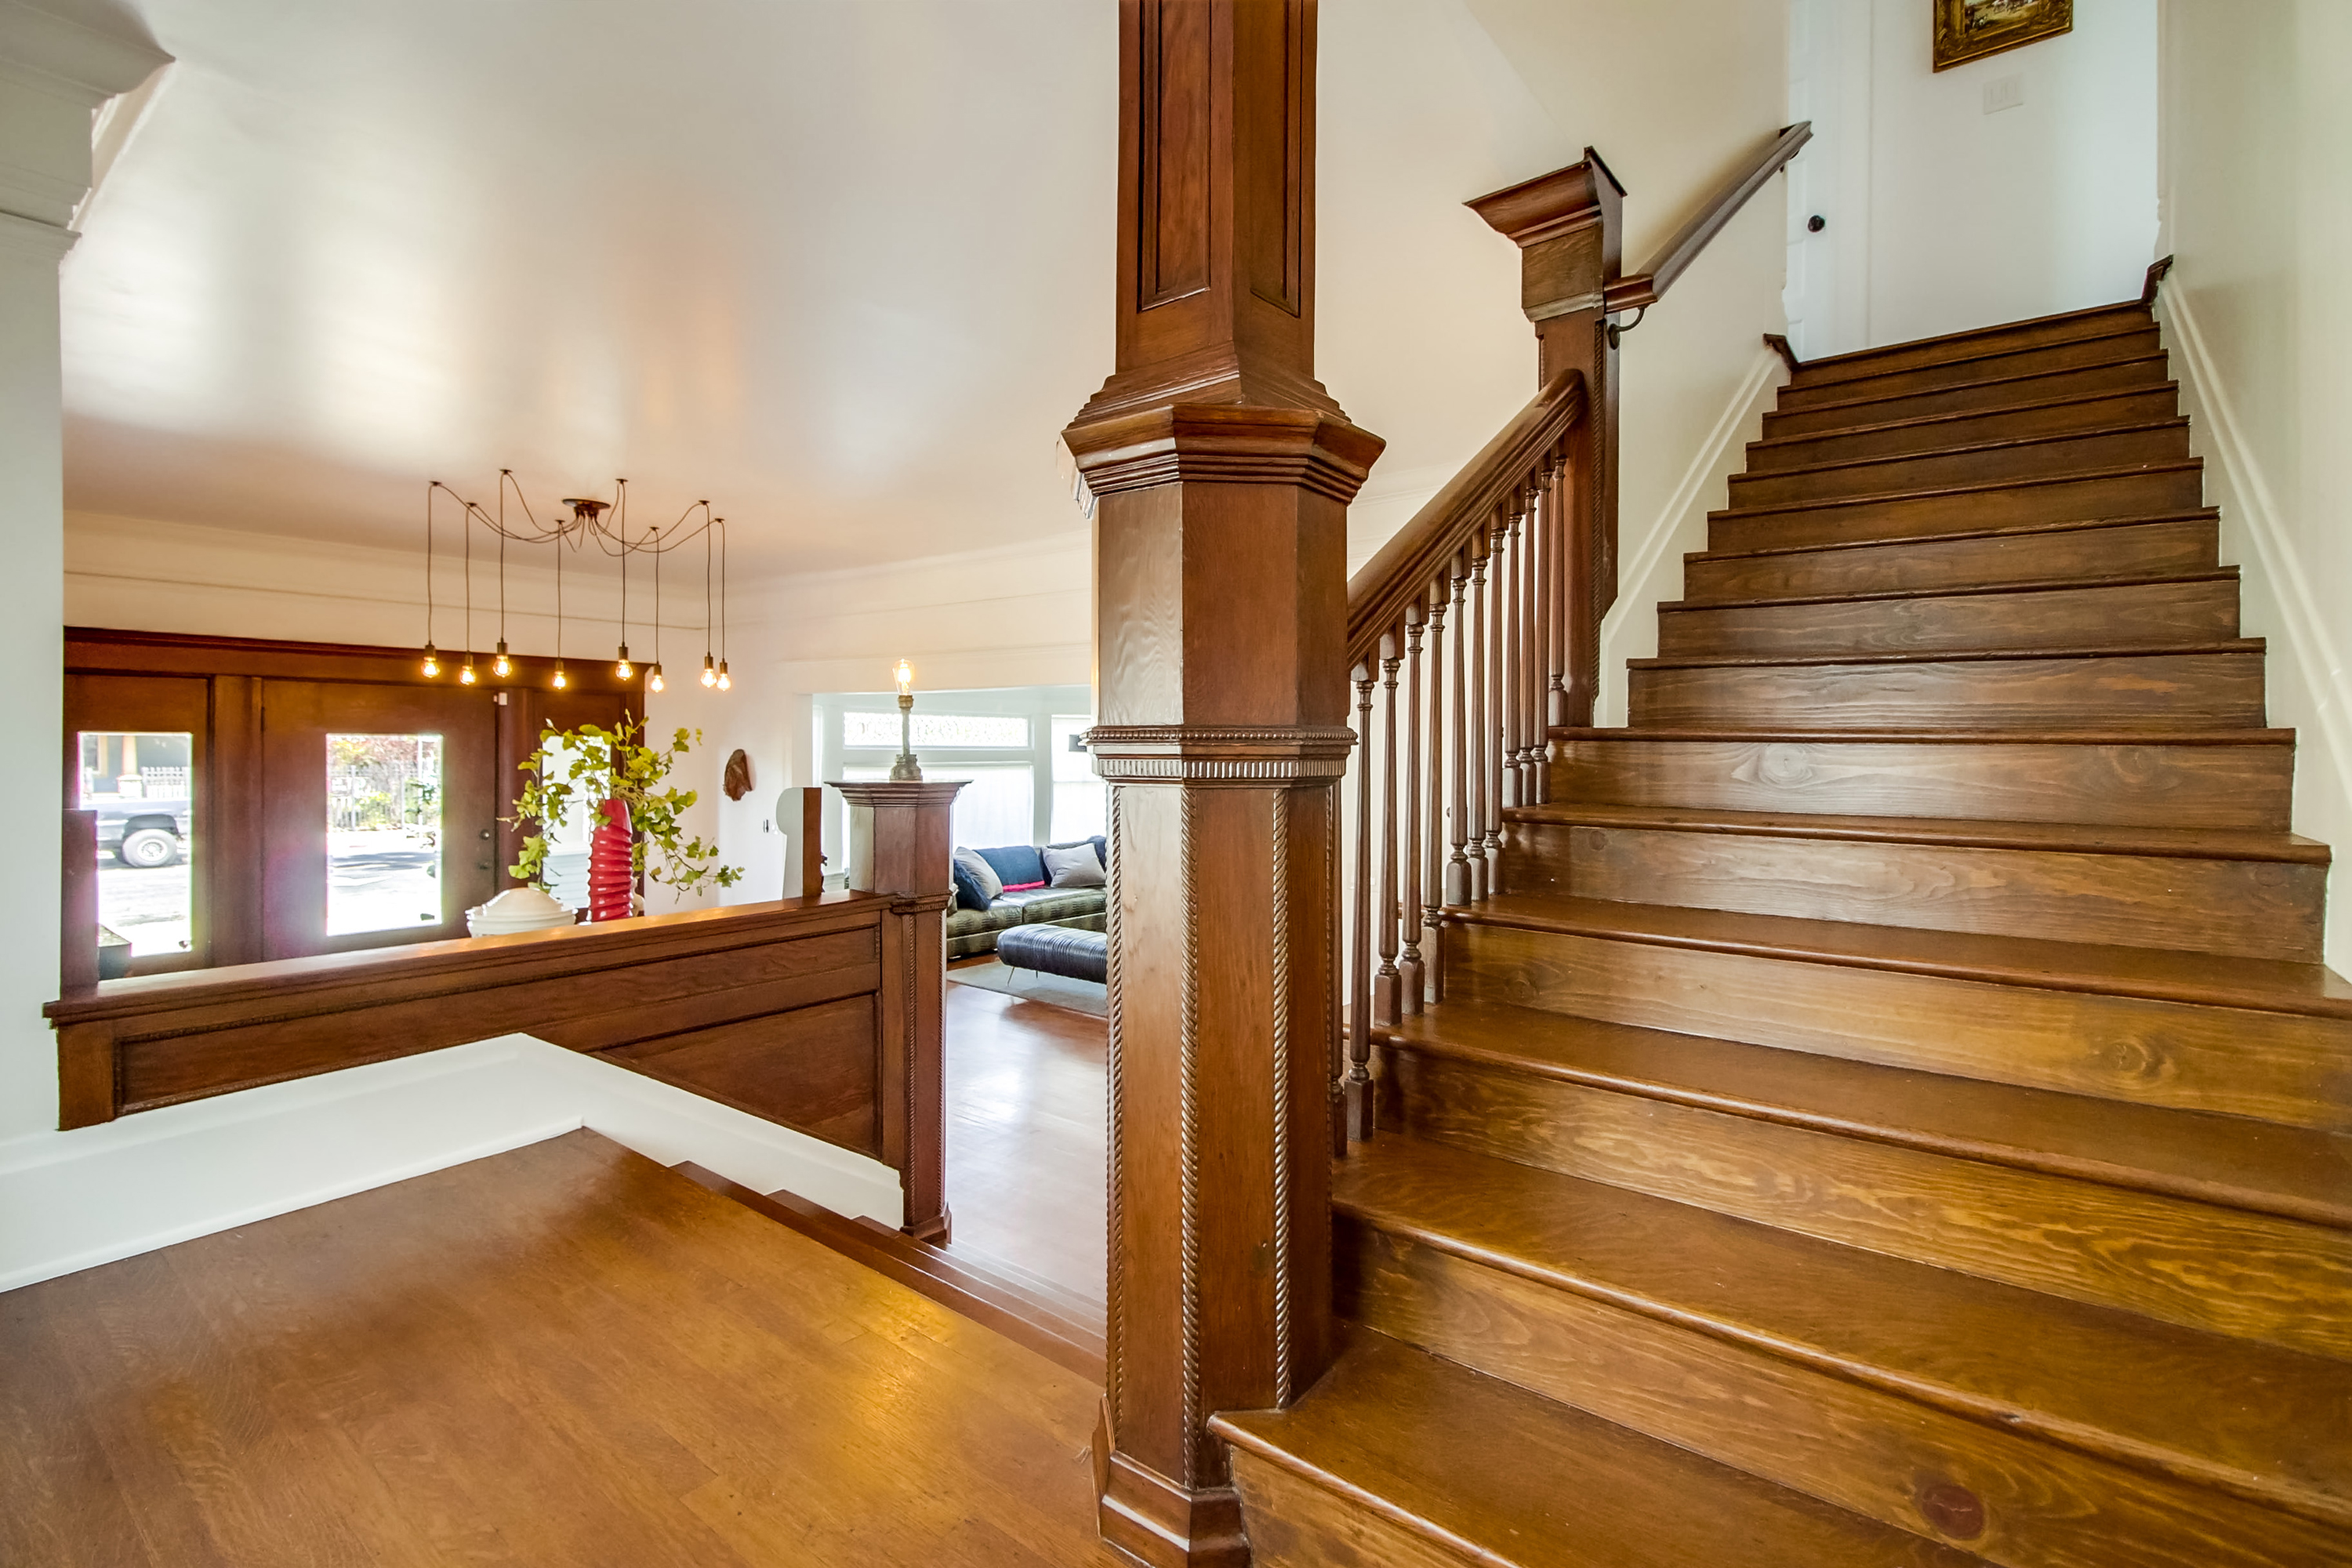 jefferson park craftsman for sale with updates galore lists for